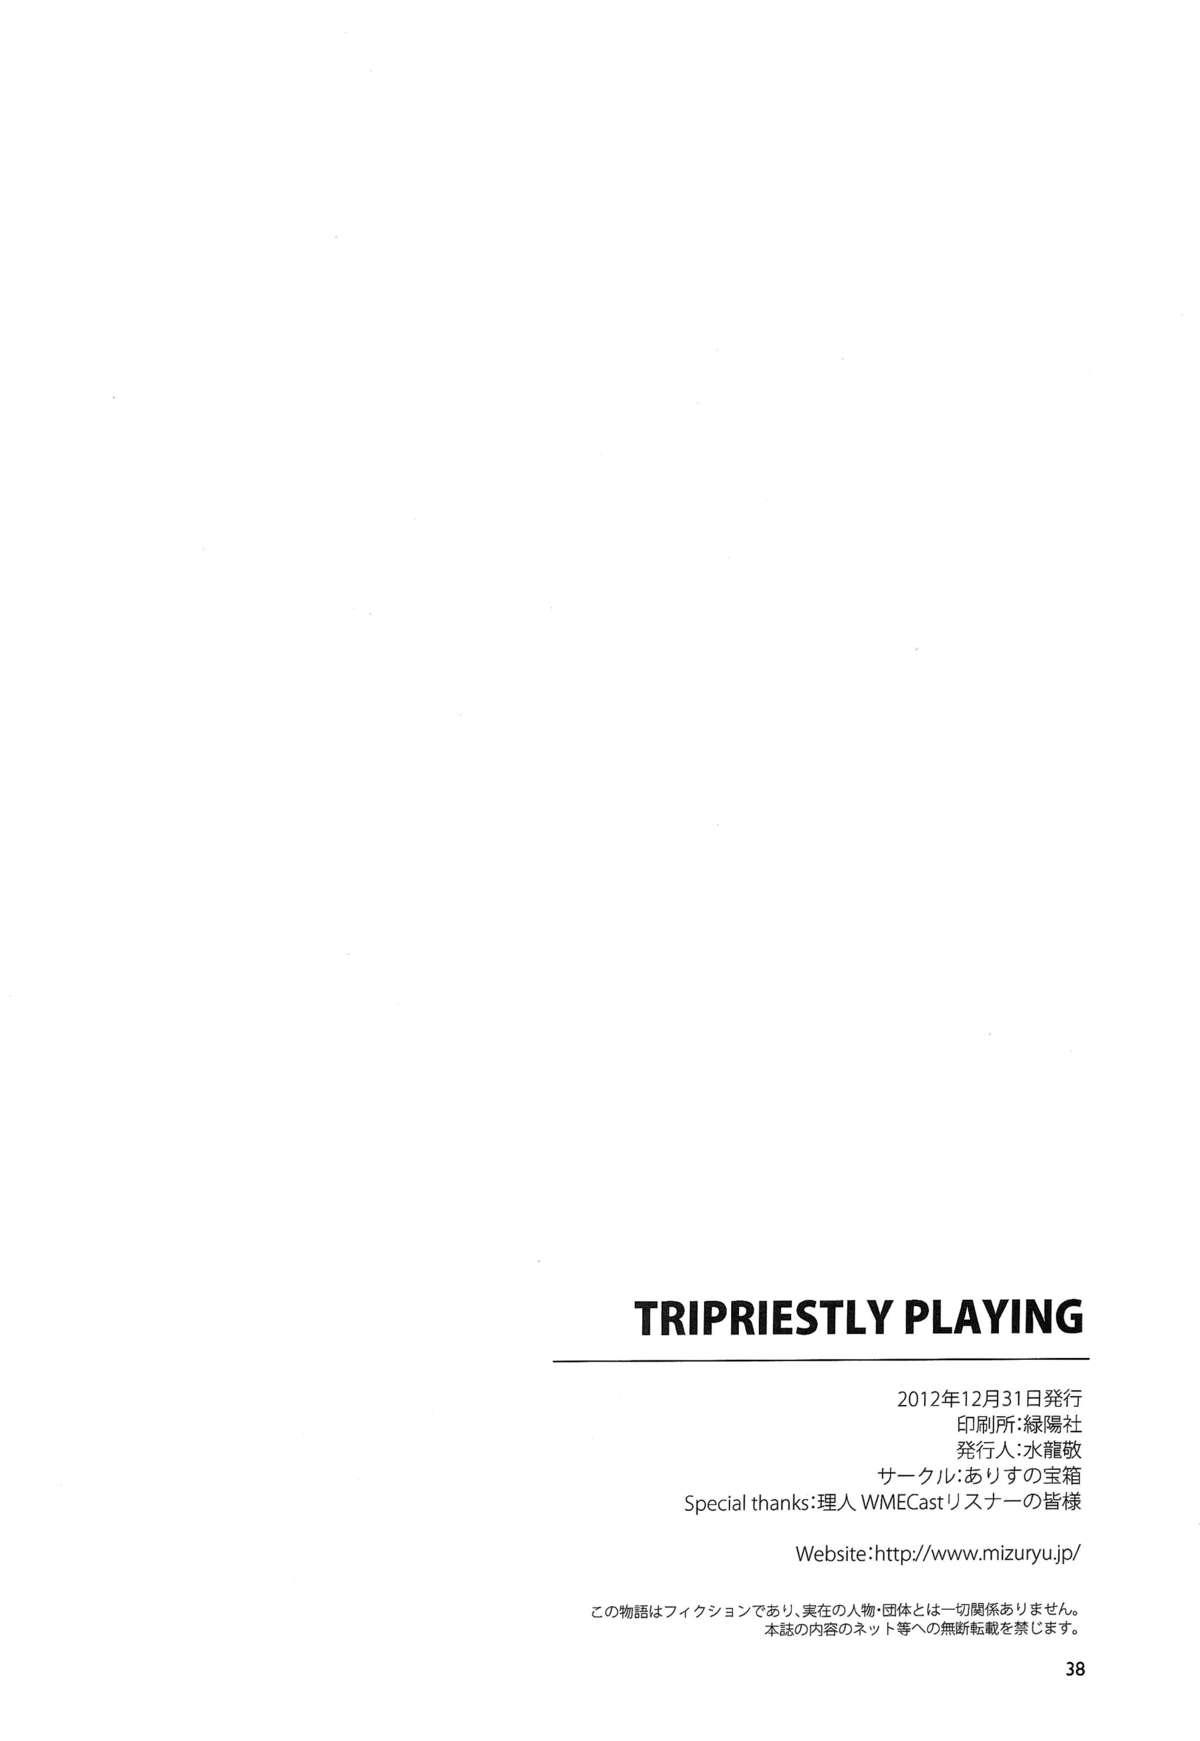 TRIPRIESTLY PLAYING 36